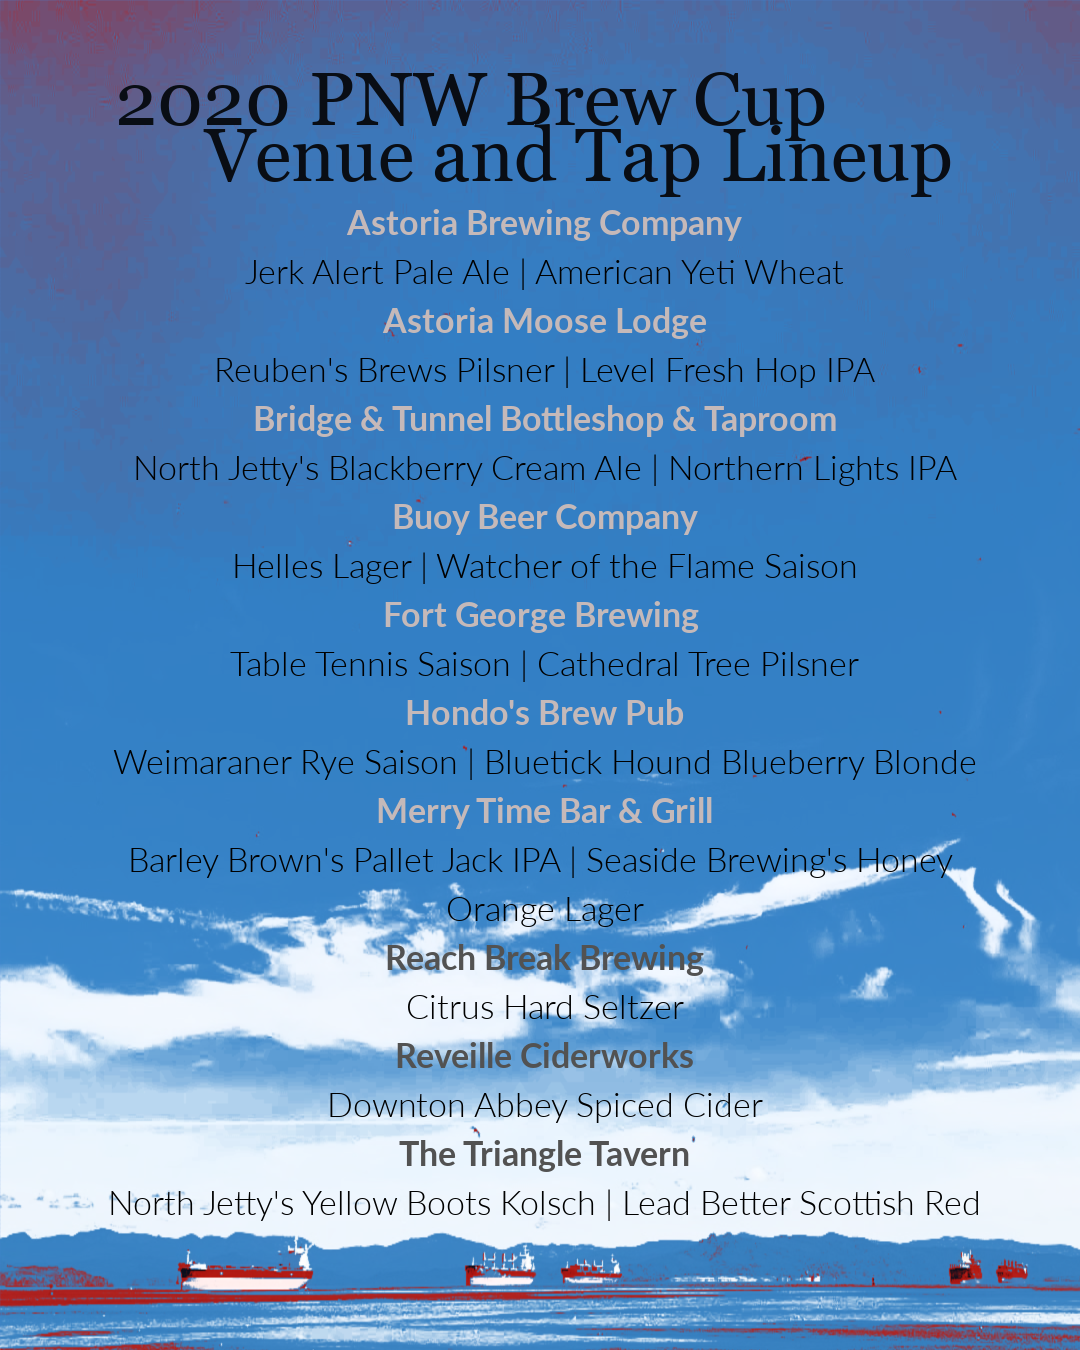 2020 Pacific Northwest Brew Cup Venues and Tap Lineup